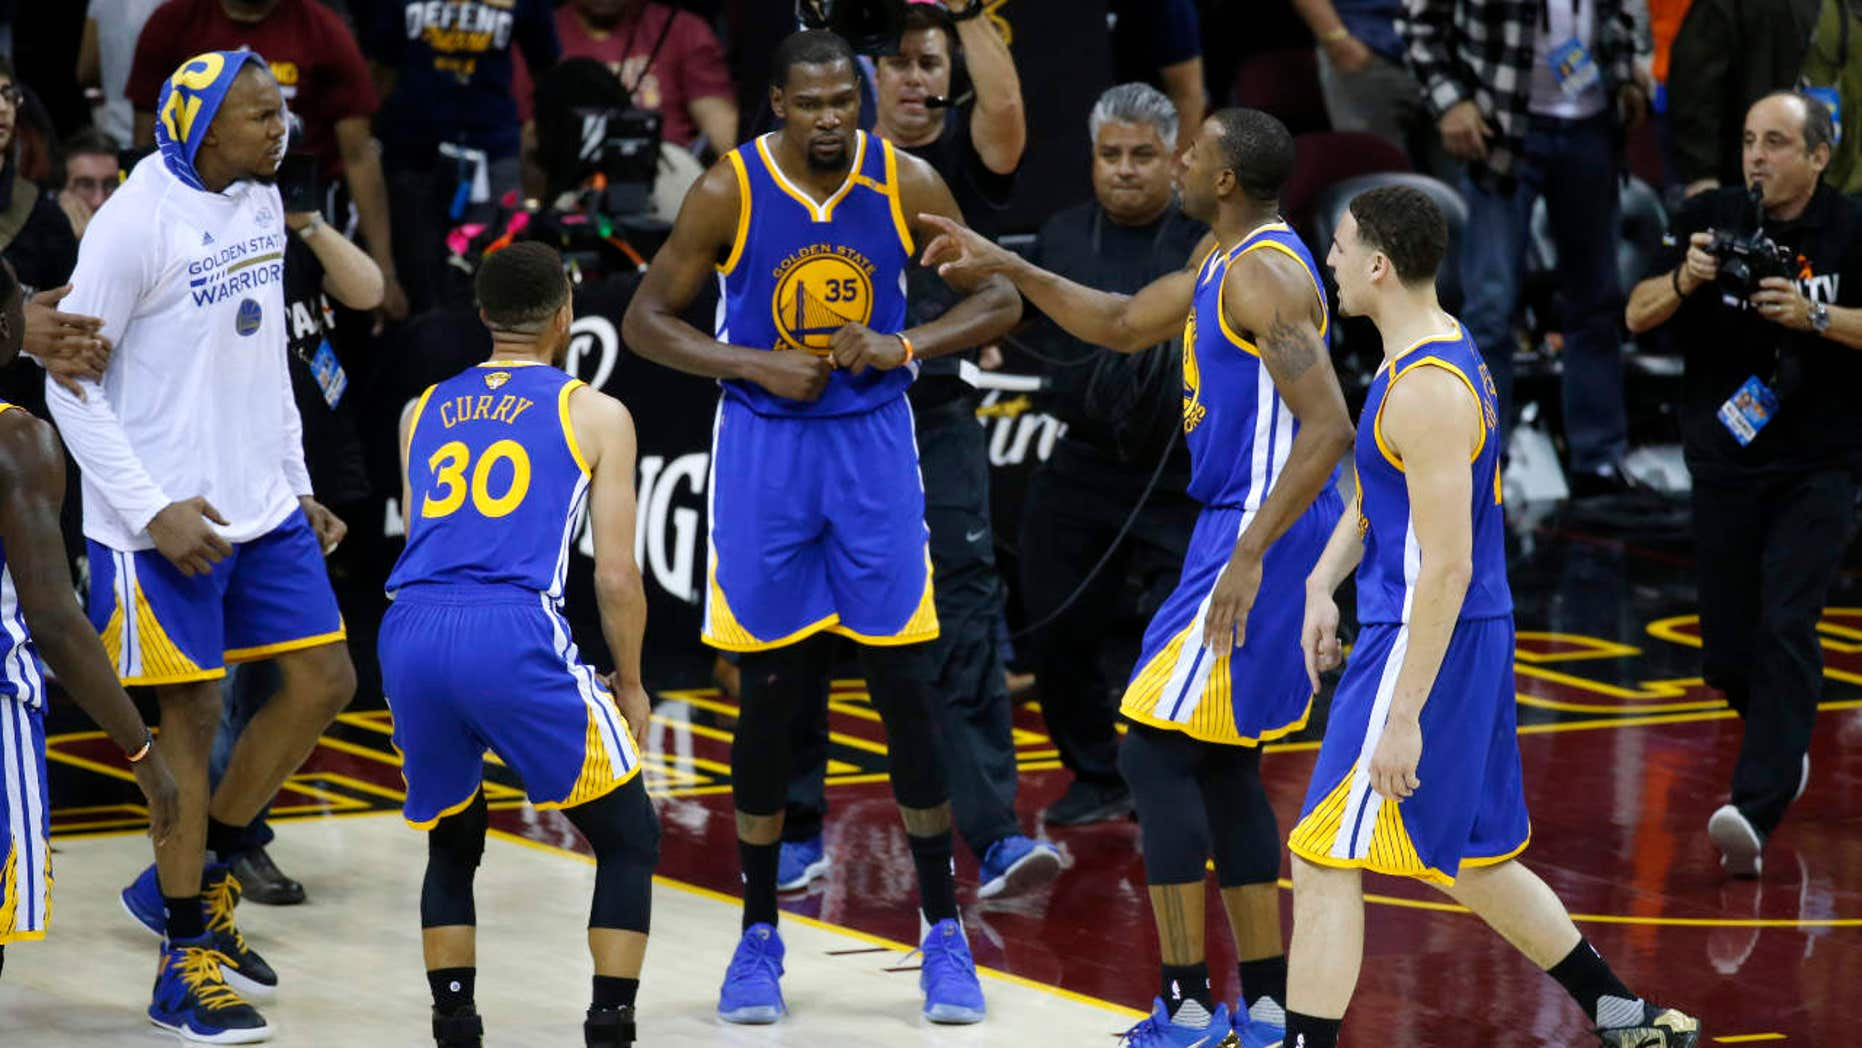 Golden State Warriors forward Kevin Durant (35) celebrates with teammates after the Warriors defeated the Cleveland Cavaliers 118-113 in Game 3 of basketball's NBA Finals in Cleveland, Wednesday, June 7, 2017.